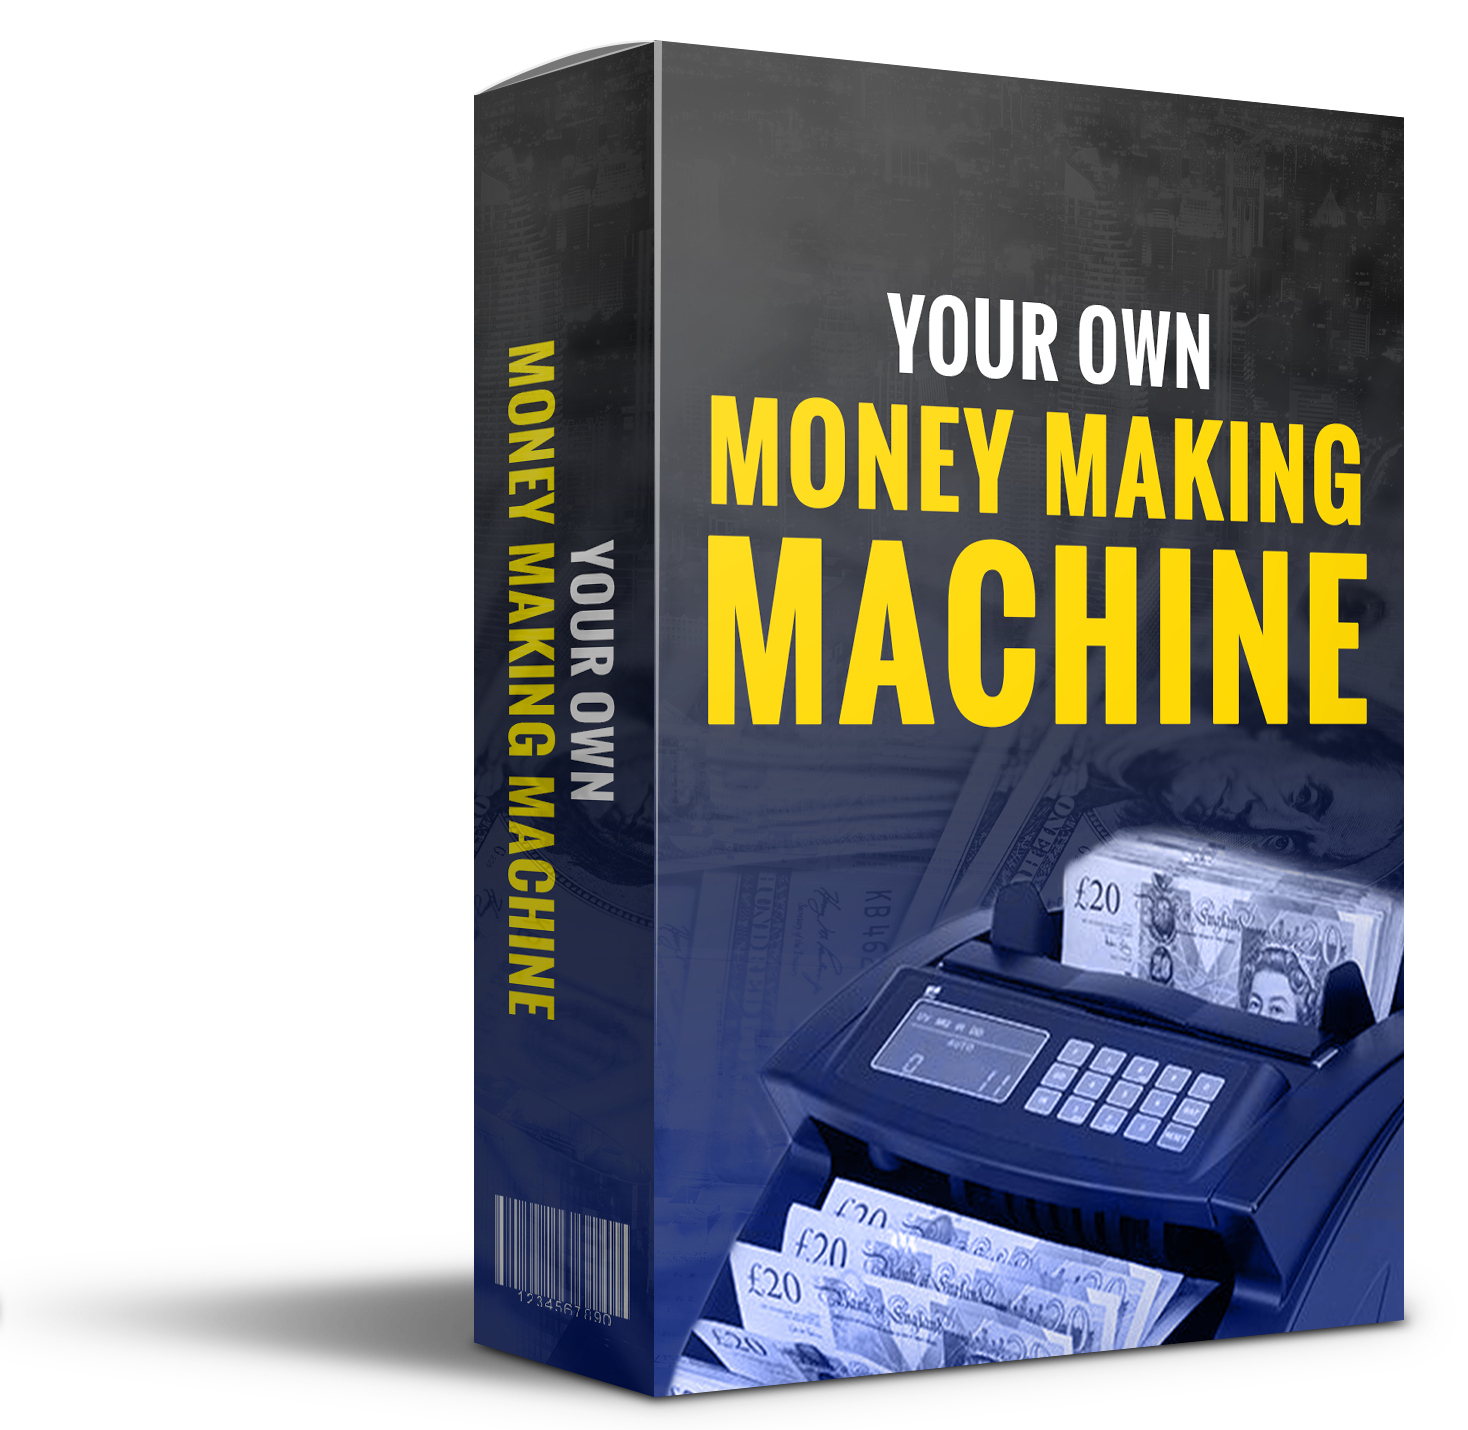 MONEY MAKING MACHINE YOUR OWN MONEY MAKING MACHINE VEARY GOOD FOR YOUR LIFE AND HELPFUL FOR YOURS